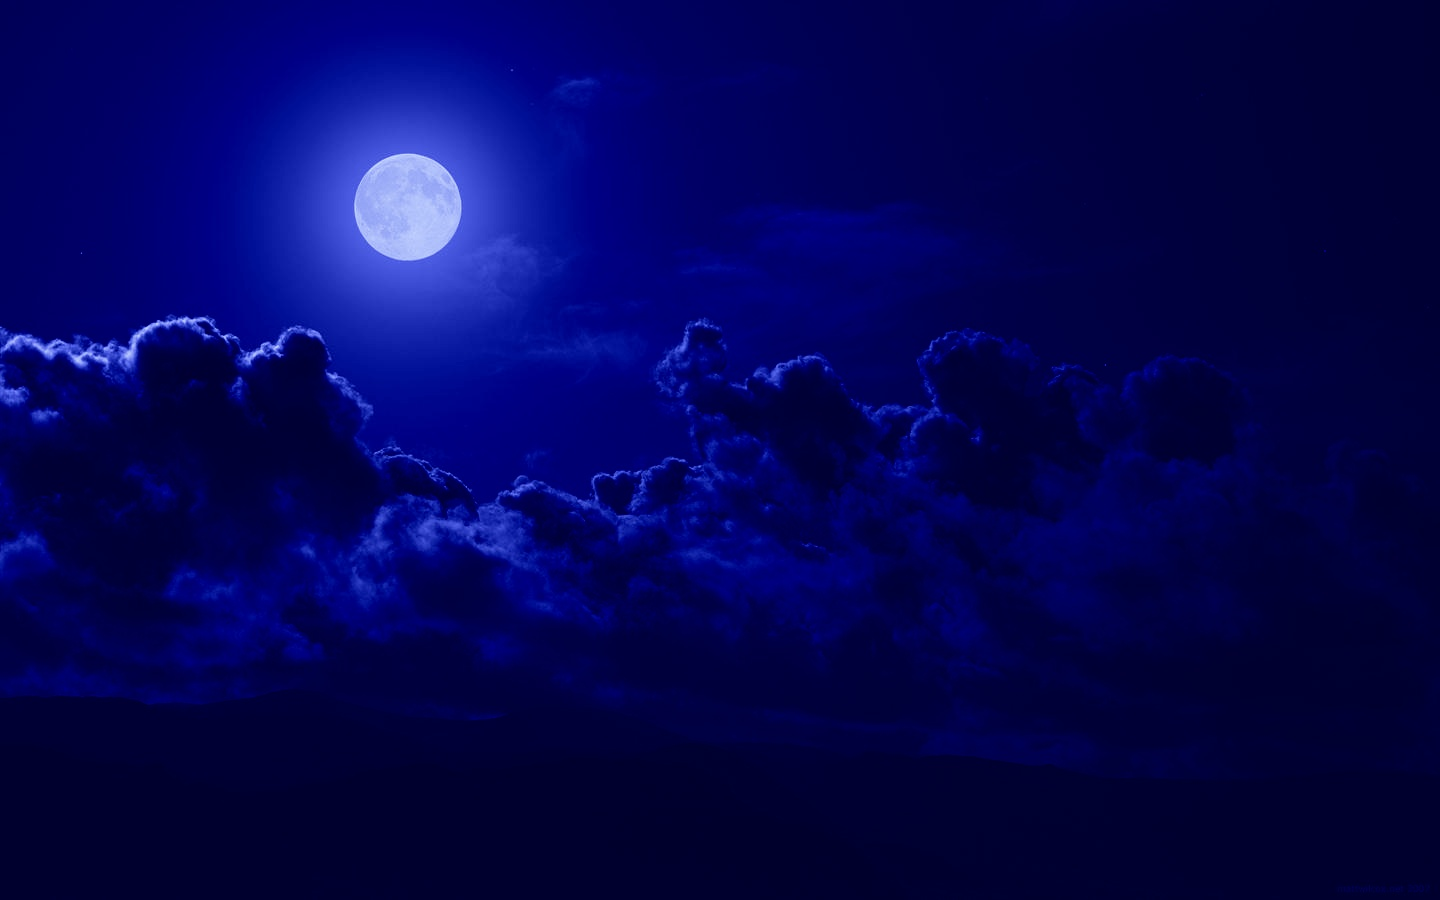 blue night sky background - photo #28